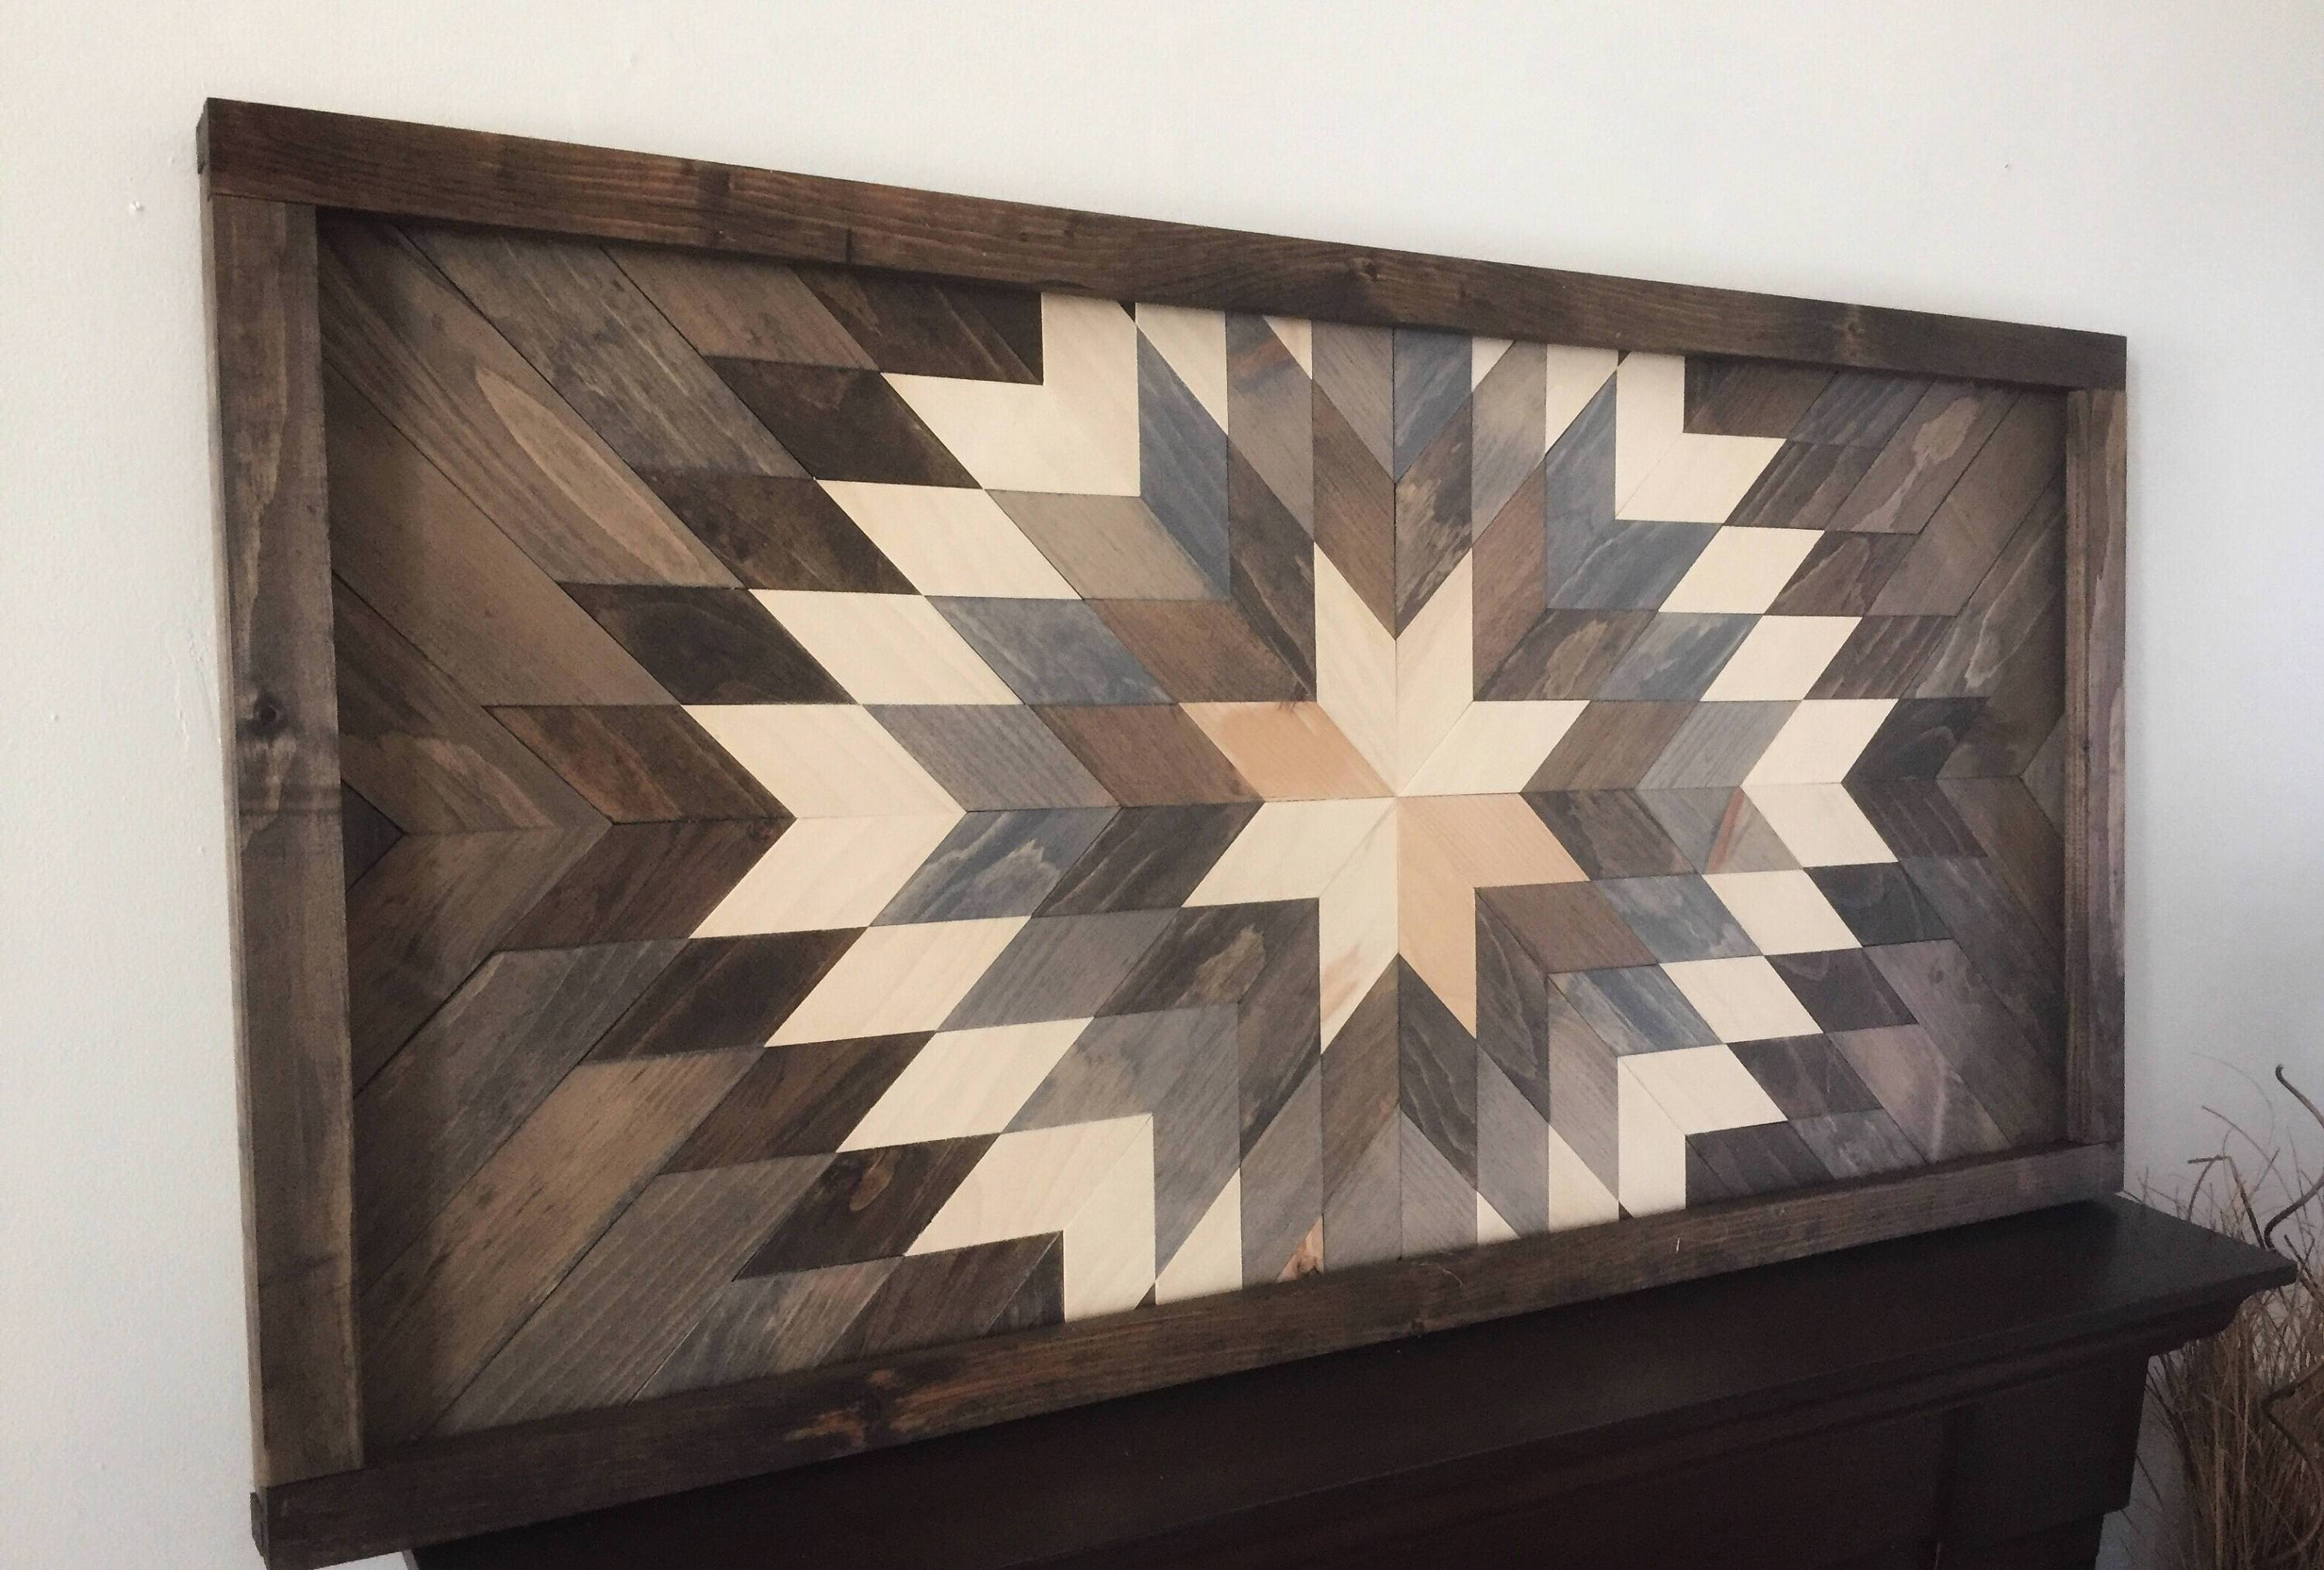 Reclaimed Wood Wall Art – Sunburst In Gray – Dark Frame Pertaining To Most Up To Date Dark Wood Wall Art (View 9 of 15)